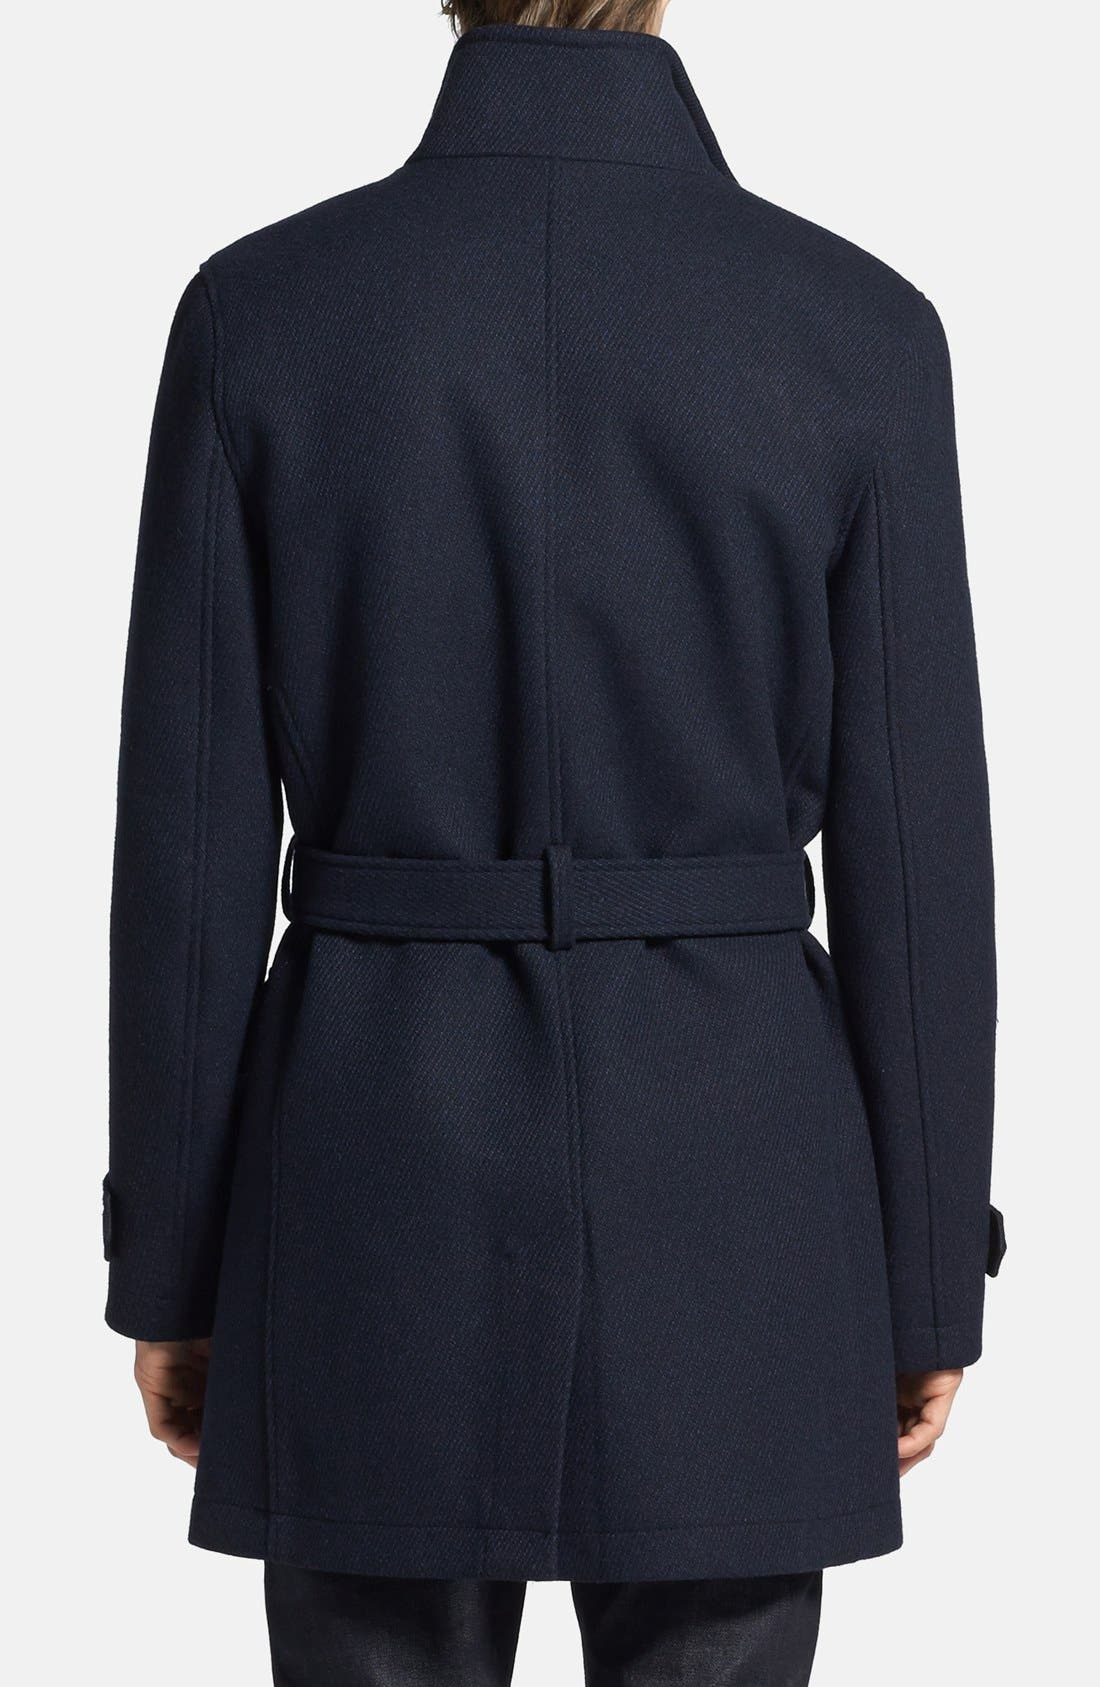 Double Breasted Wool Blend Trench Coat,                             Alternate thumbnail 6, color,                             410